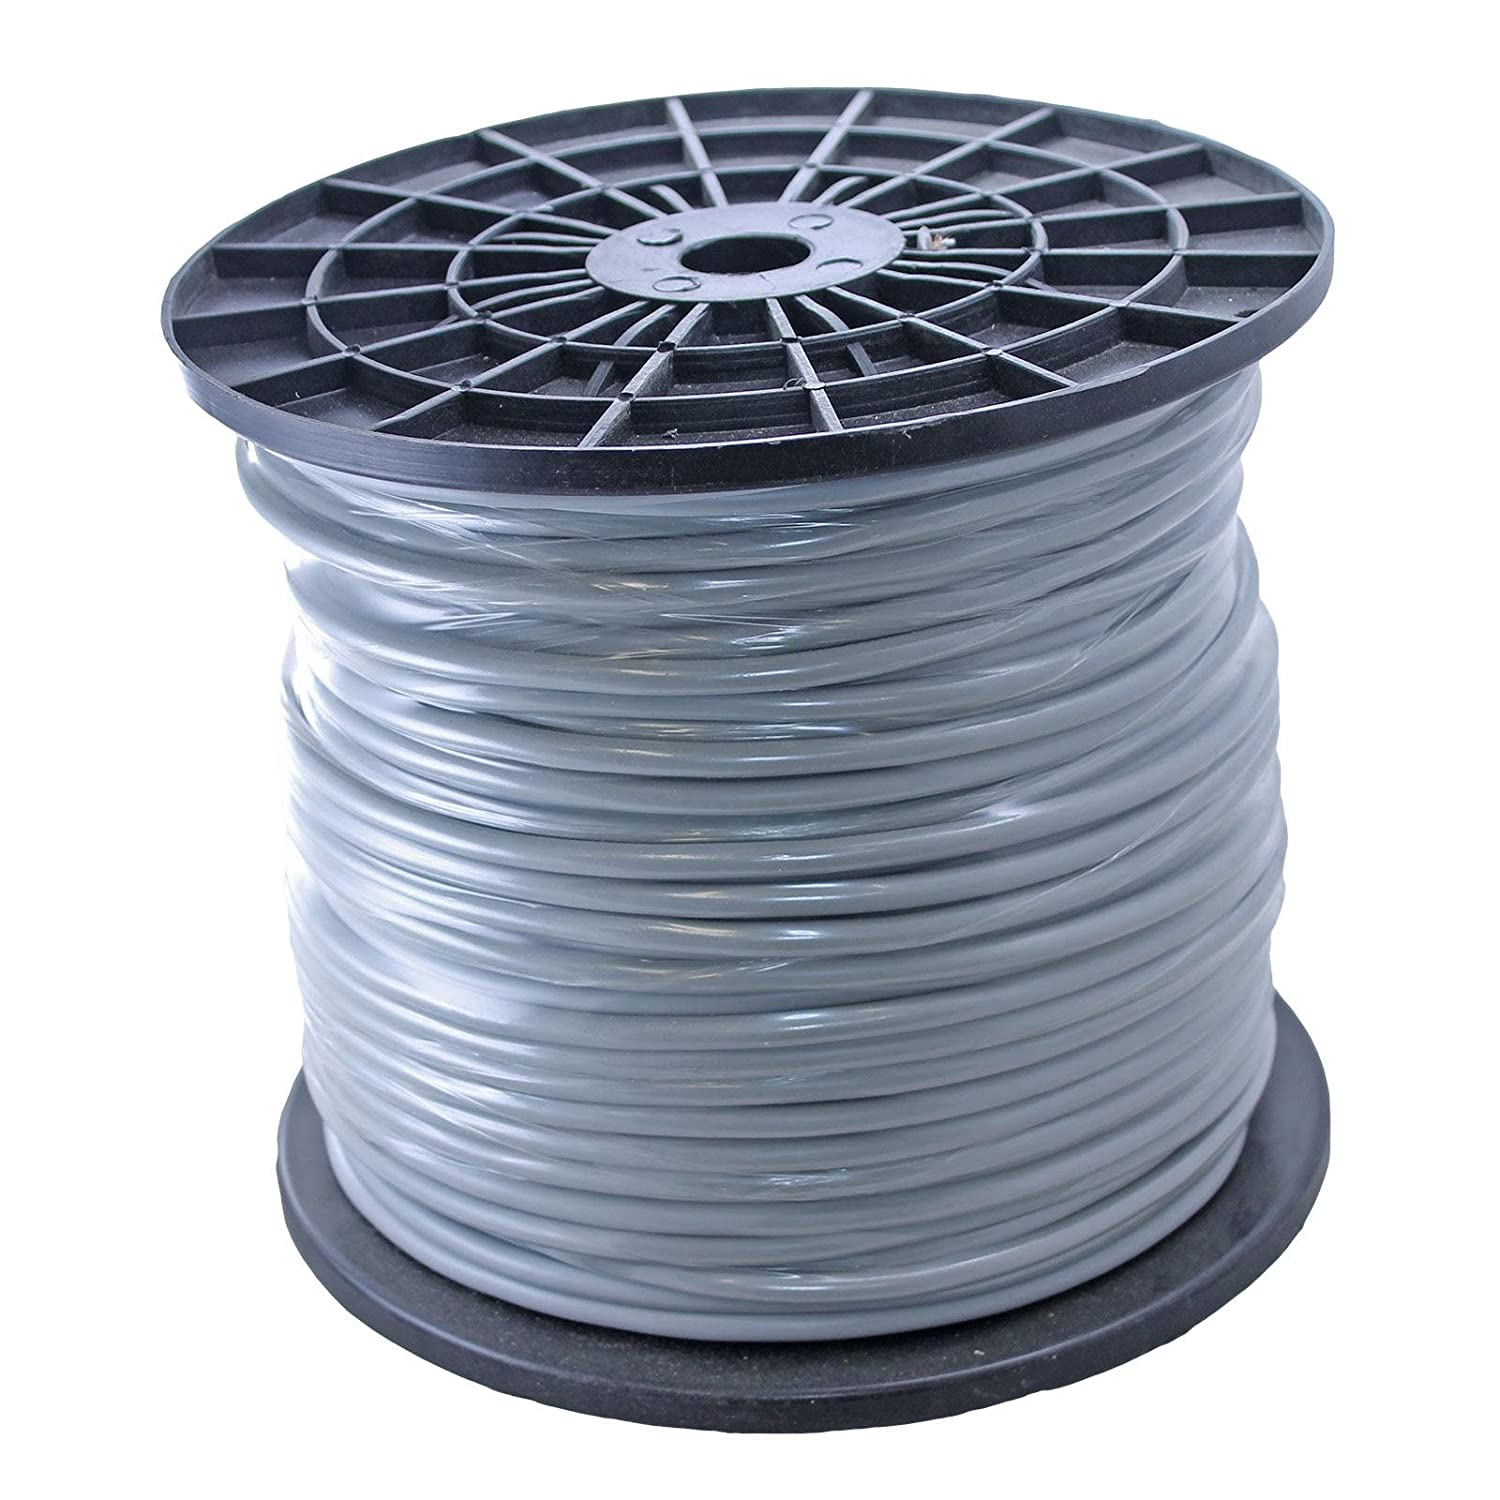 500ft Spool Of 20awg Balanced Pro Audio Wire For Xlr Trs Cable Wiring Color 2 Grey Musical Instruments